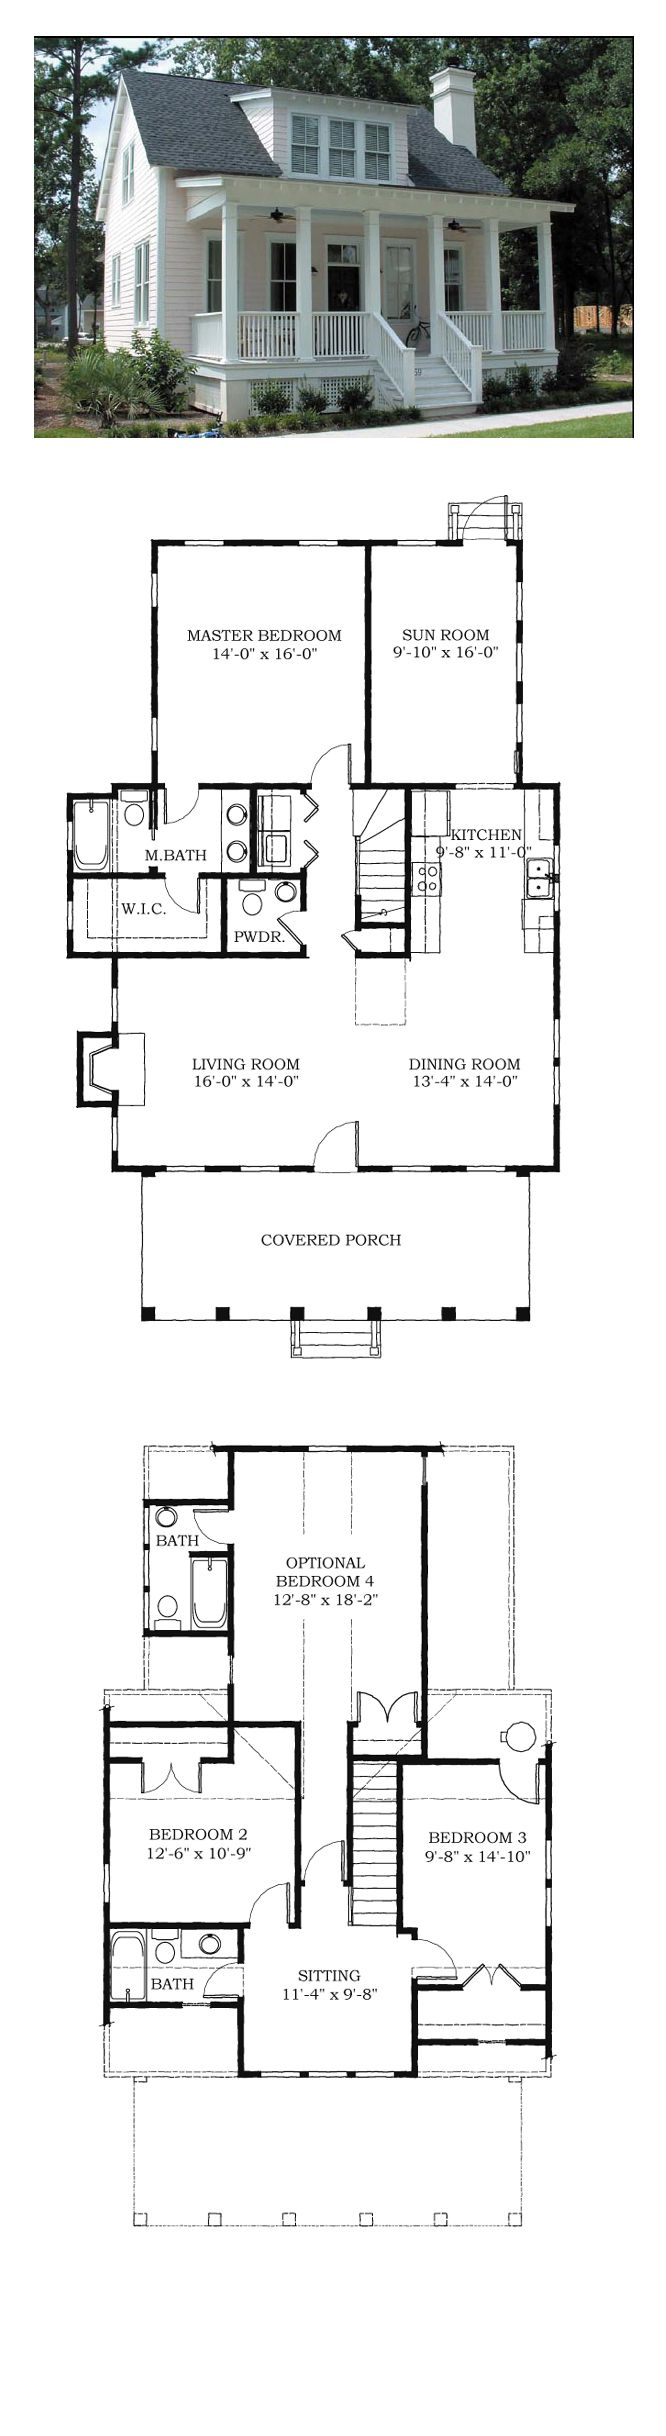 25 best ideas about small house plans on pinterest small home plans small house floor plans - Best house plans for a family of four ...